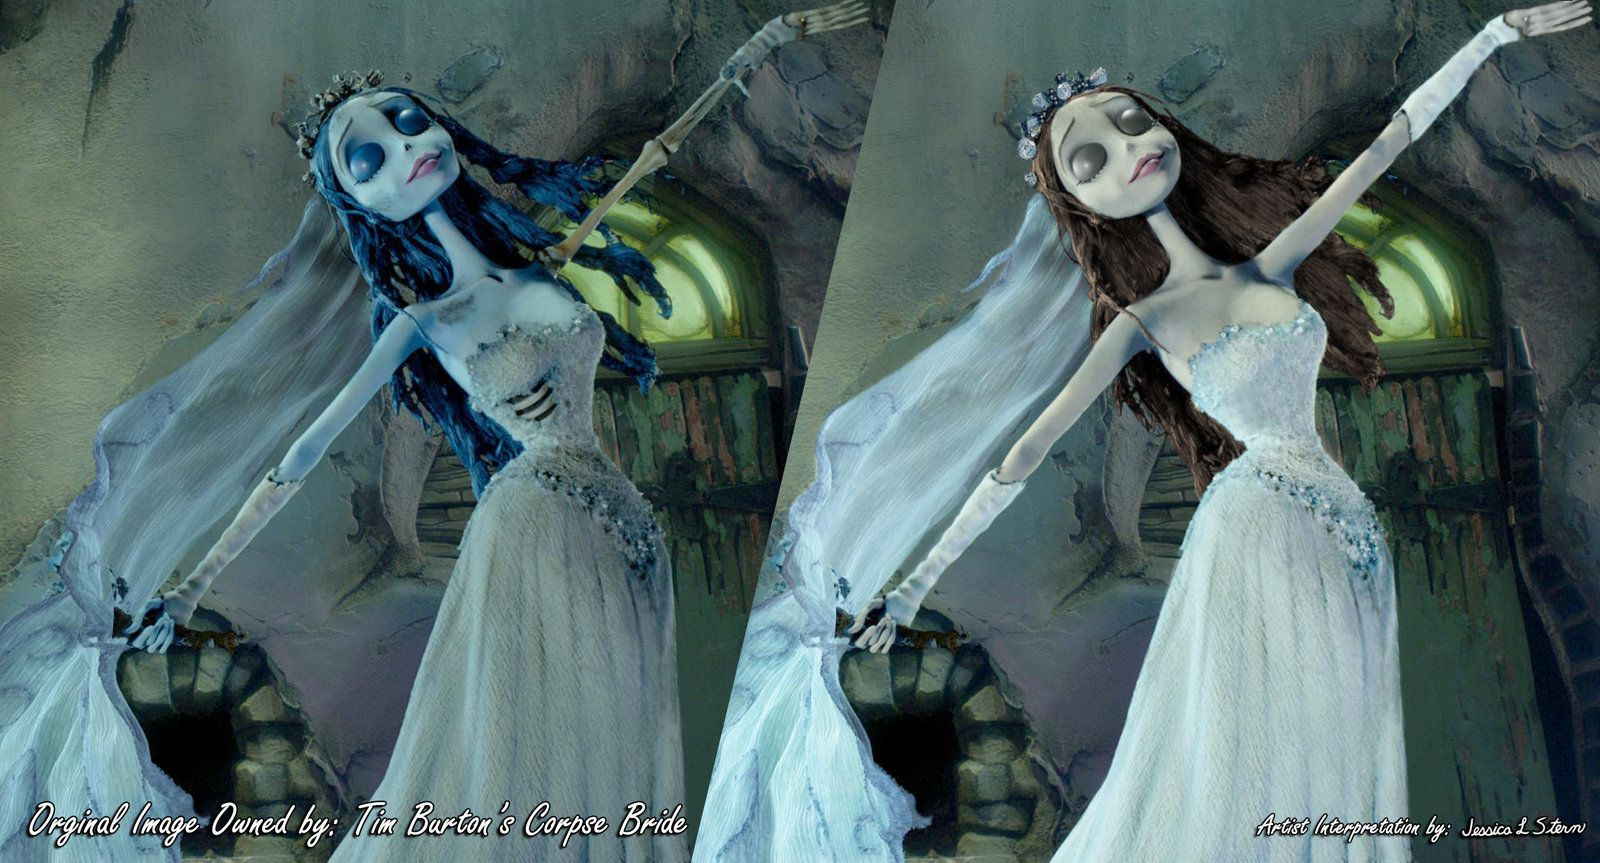 corpse bride emily alive - Google Search   Disney, Dreamworks, and ...